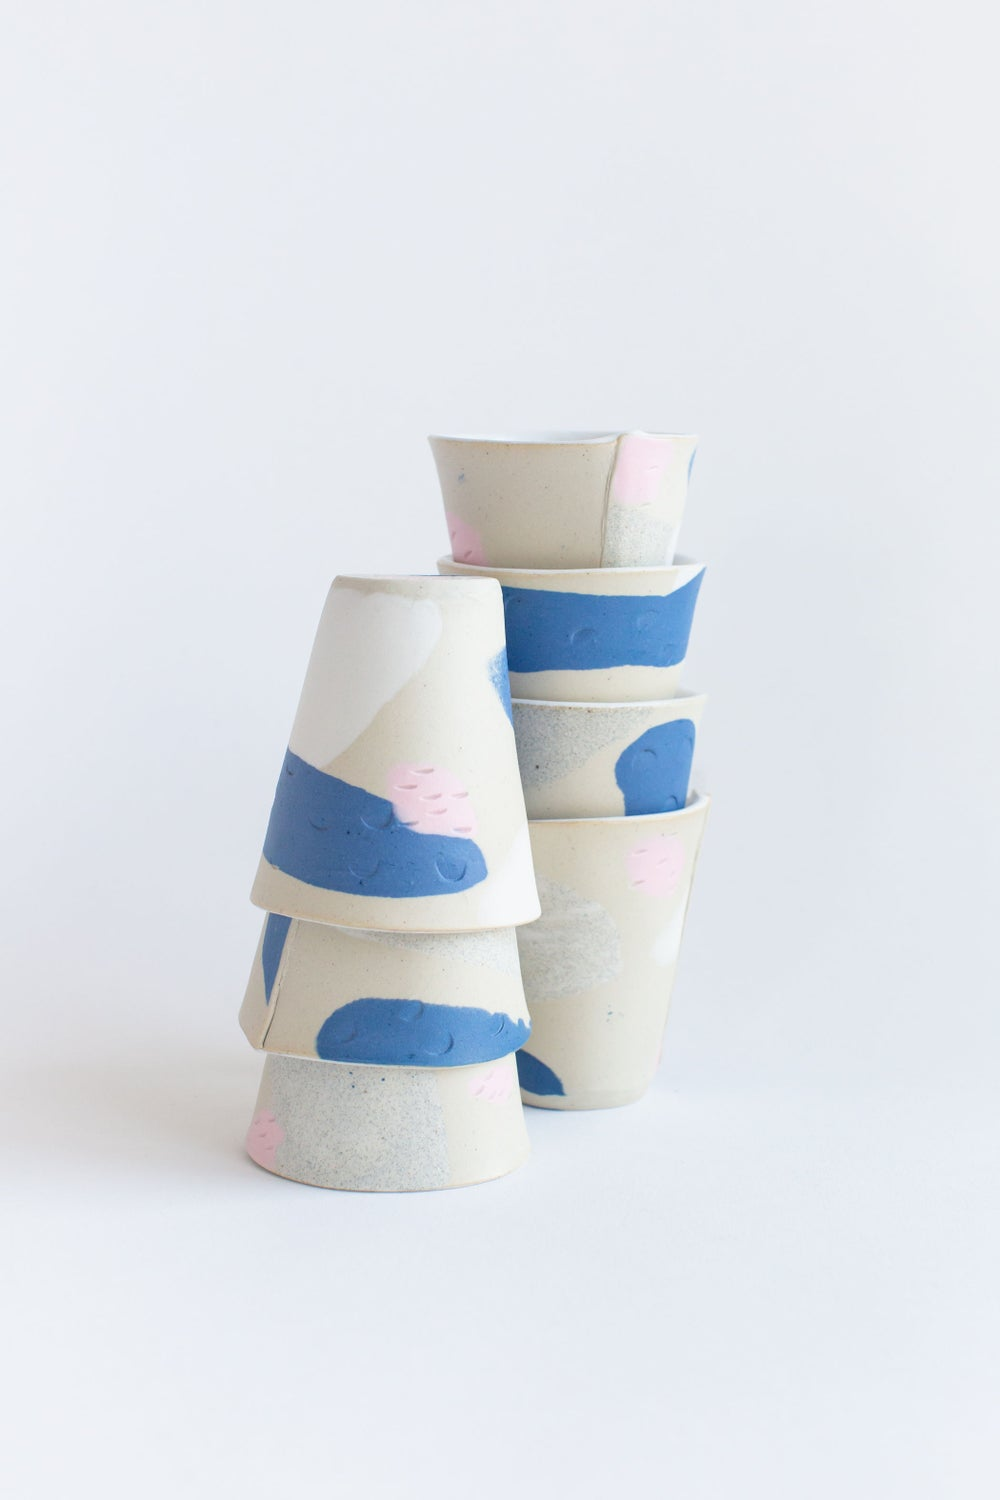 Image of Tumbler - Cobalt and bubblegum Pink porcelain inlay over a light stoneware body.